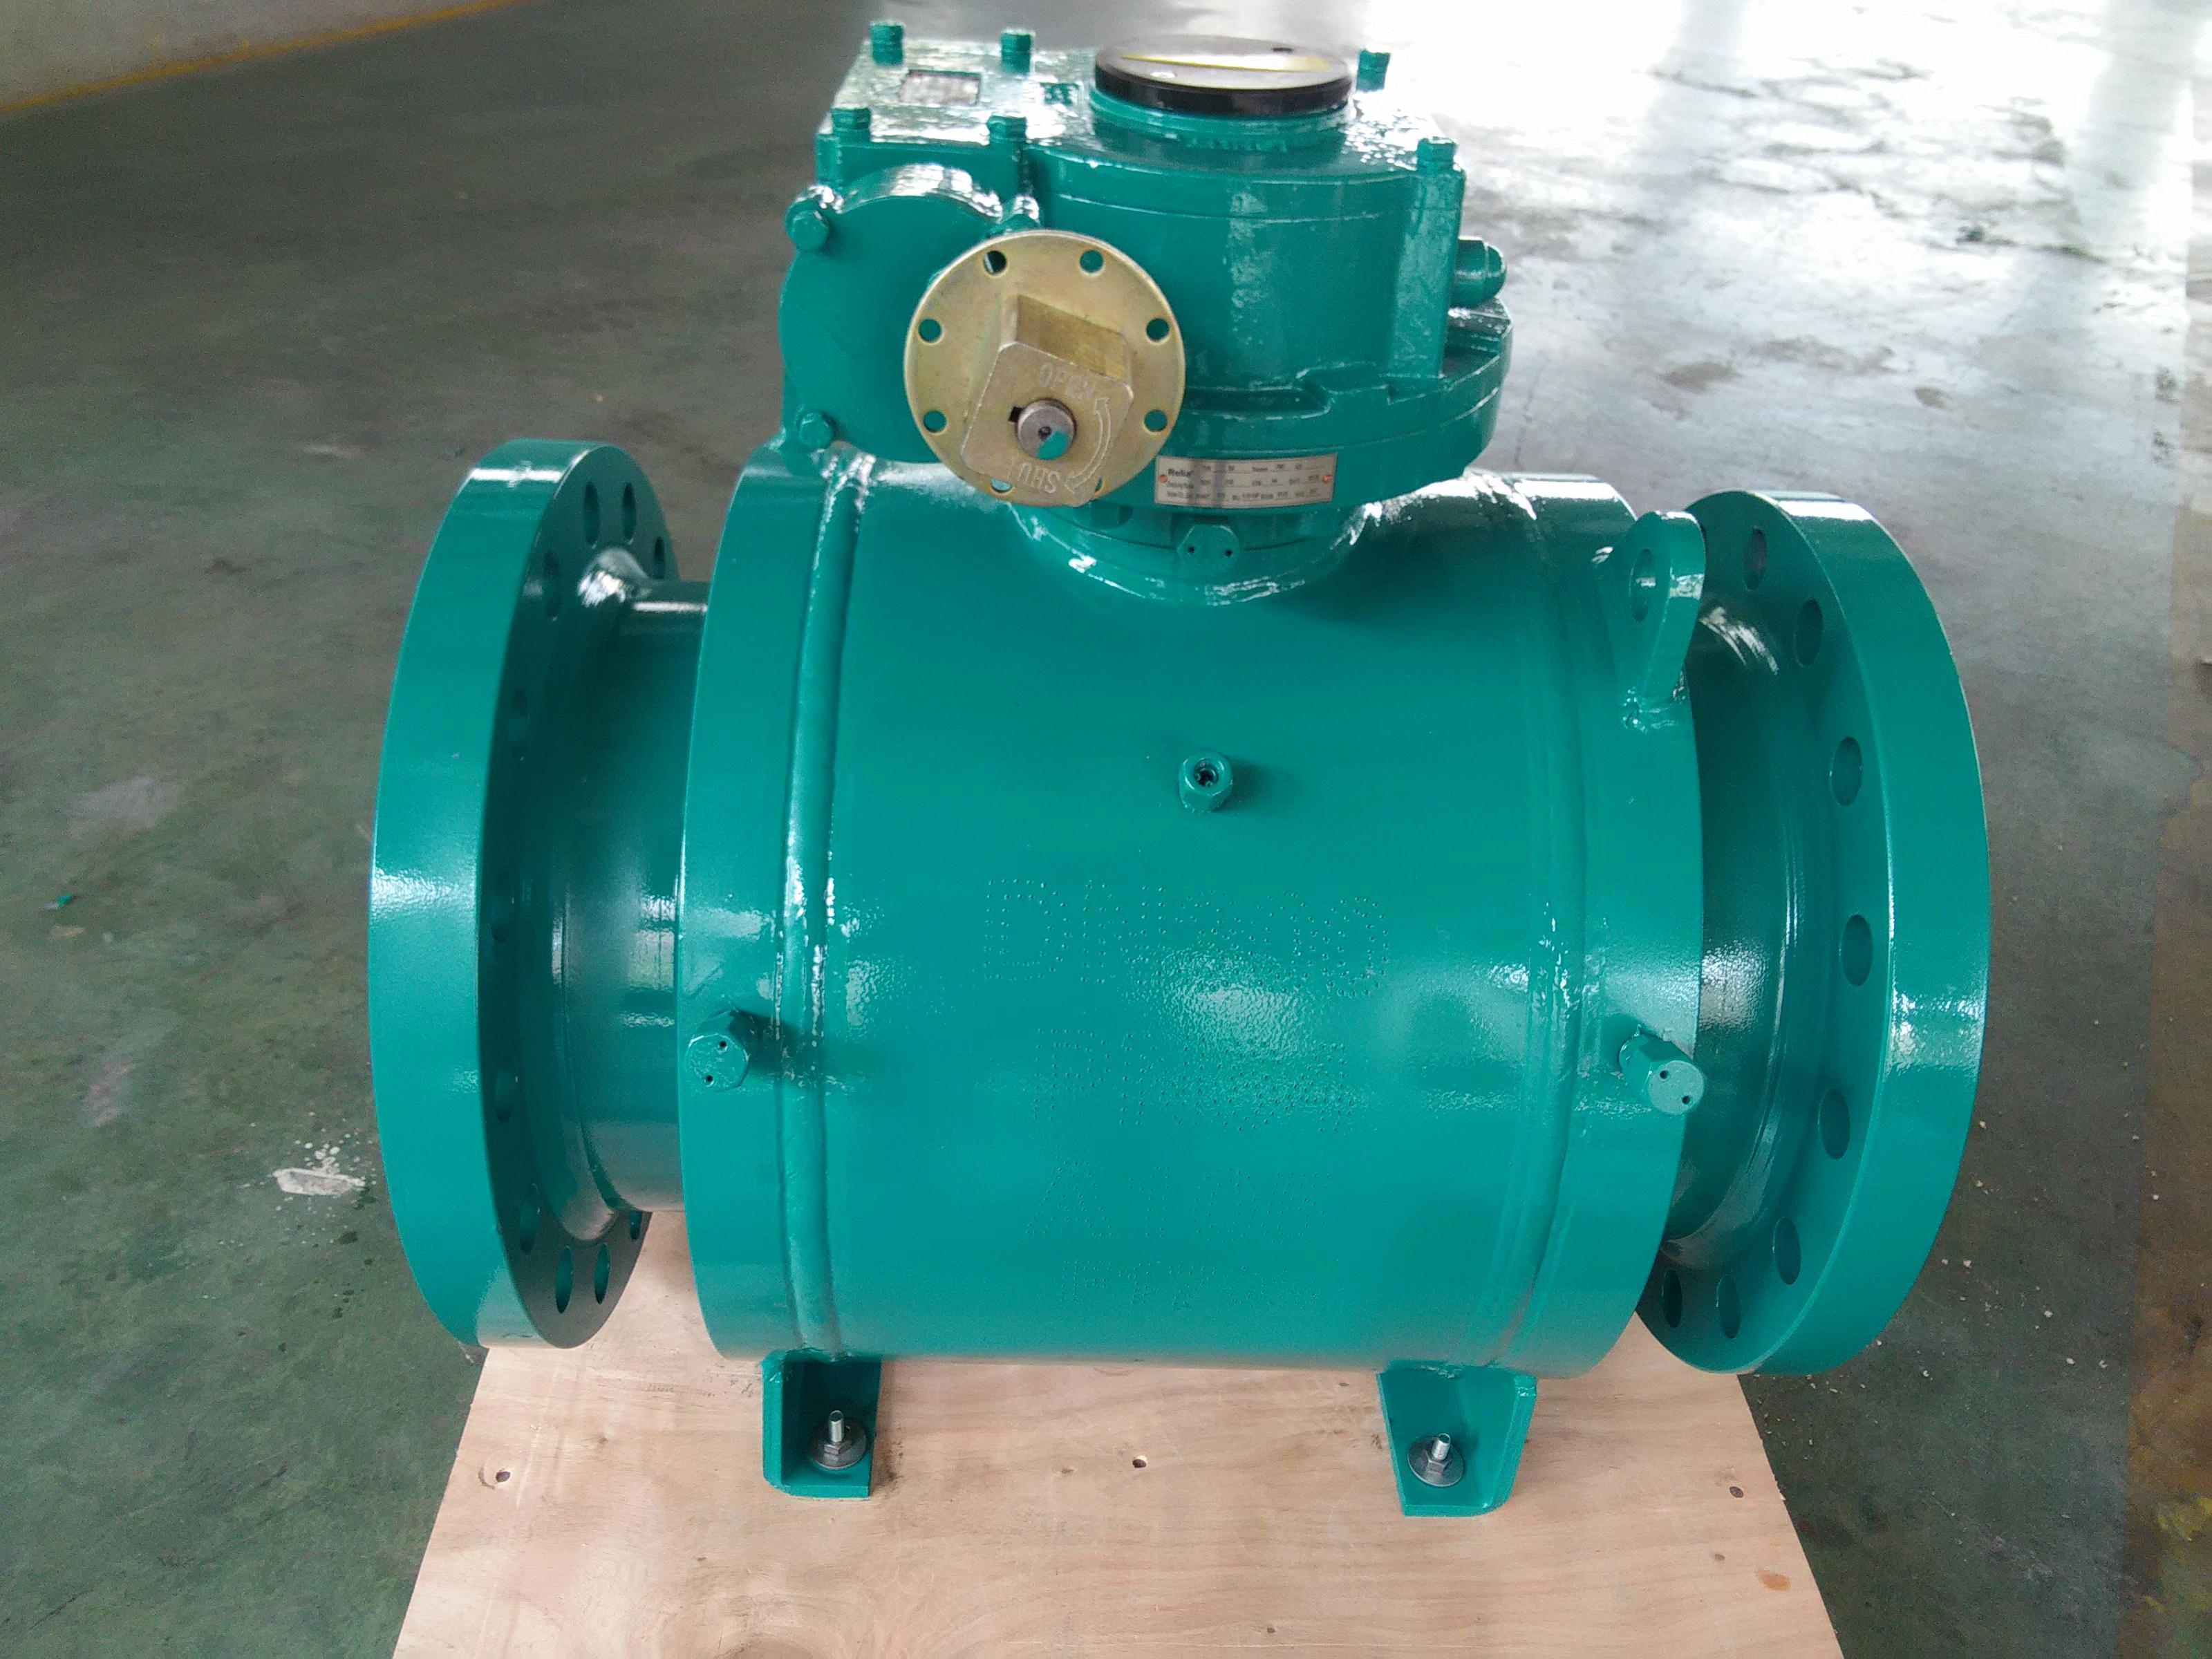 Fully Welded Trunnion Ball Valve, Full Bore, Worm Gear